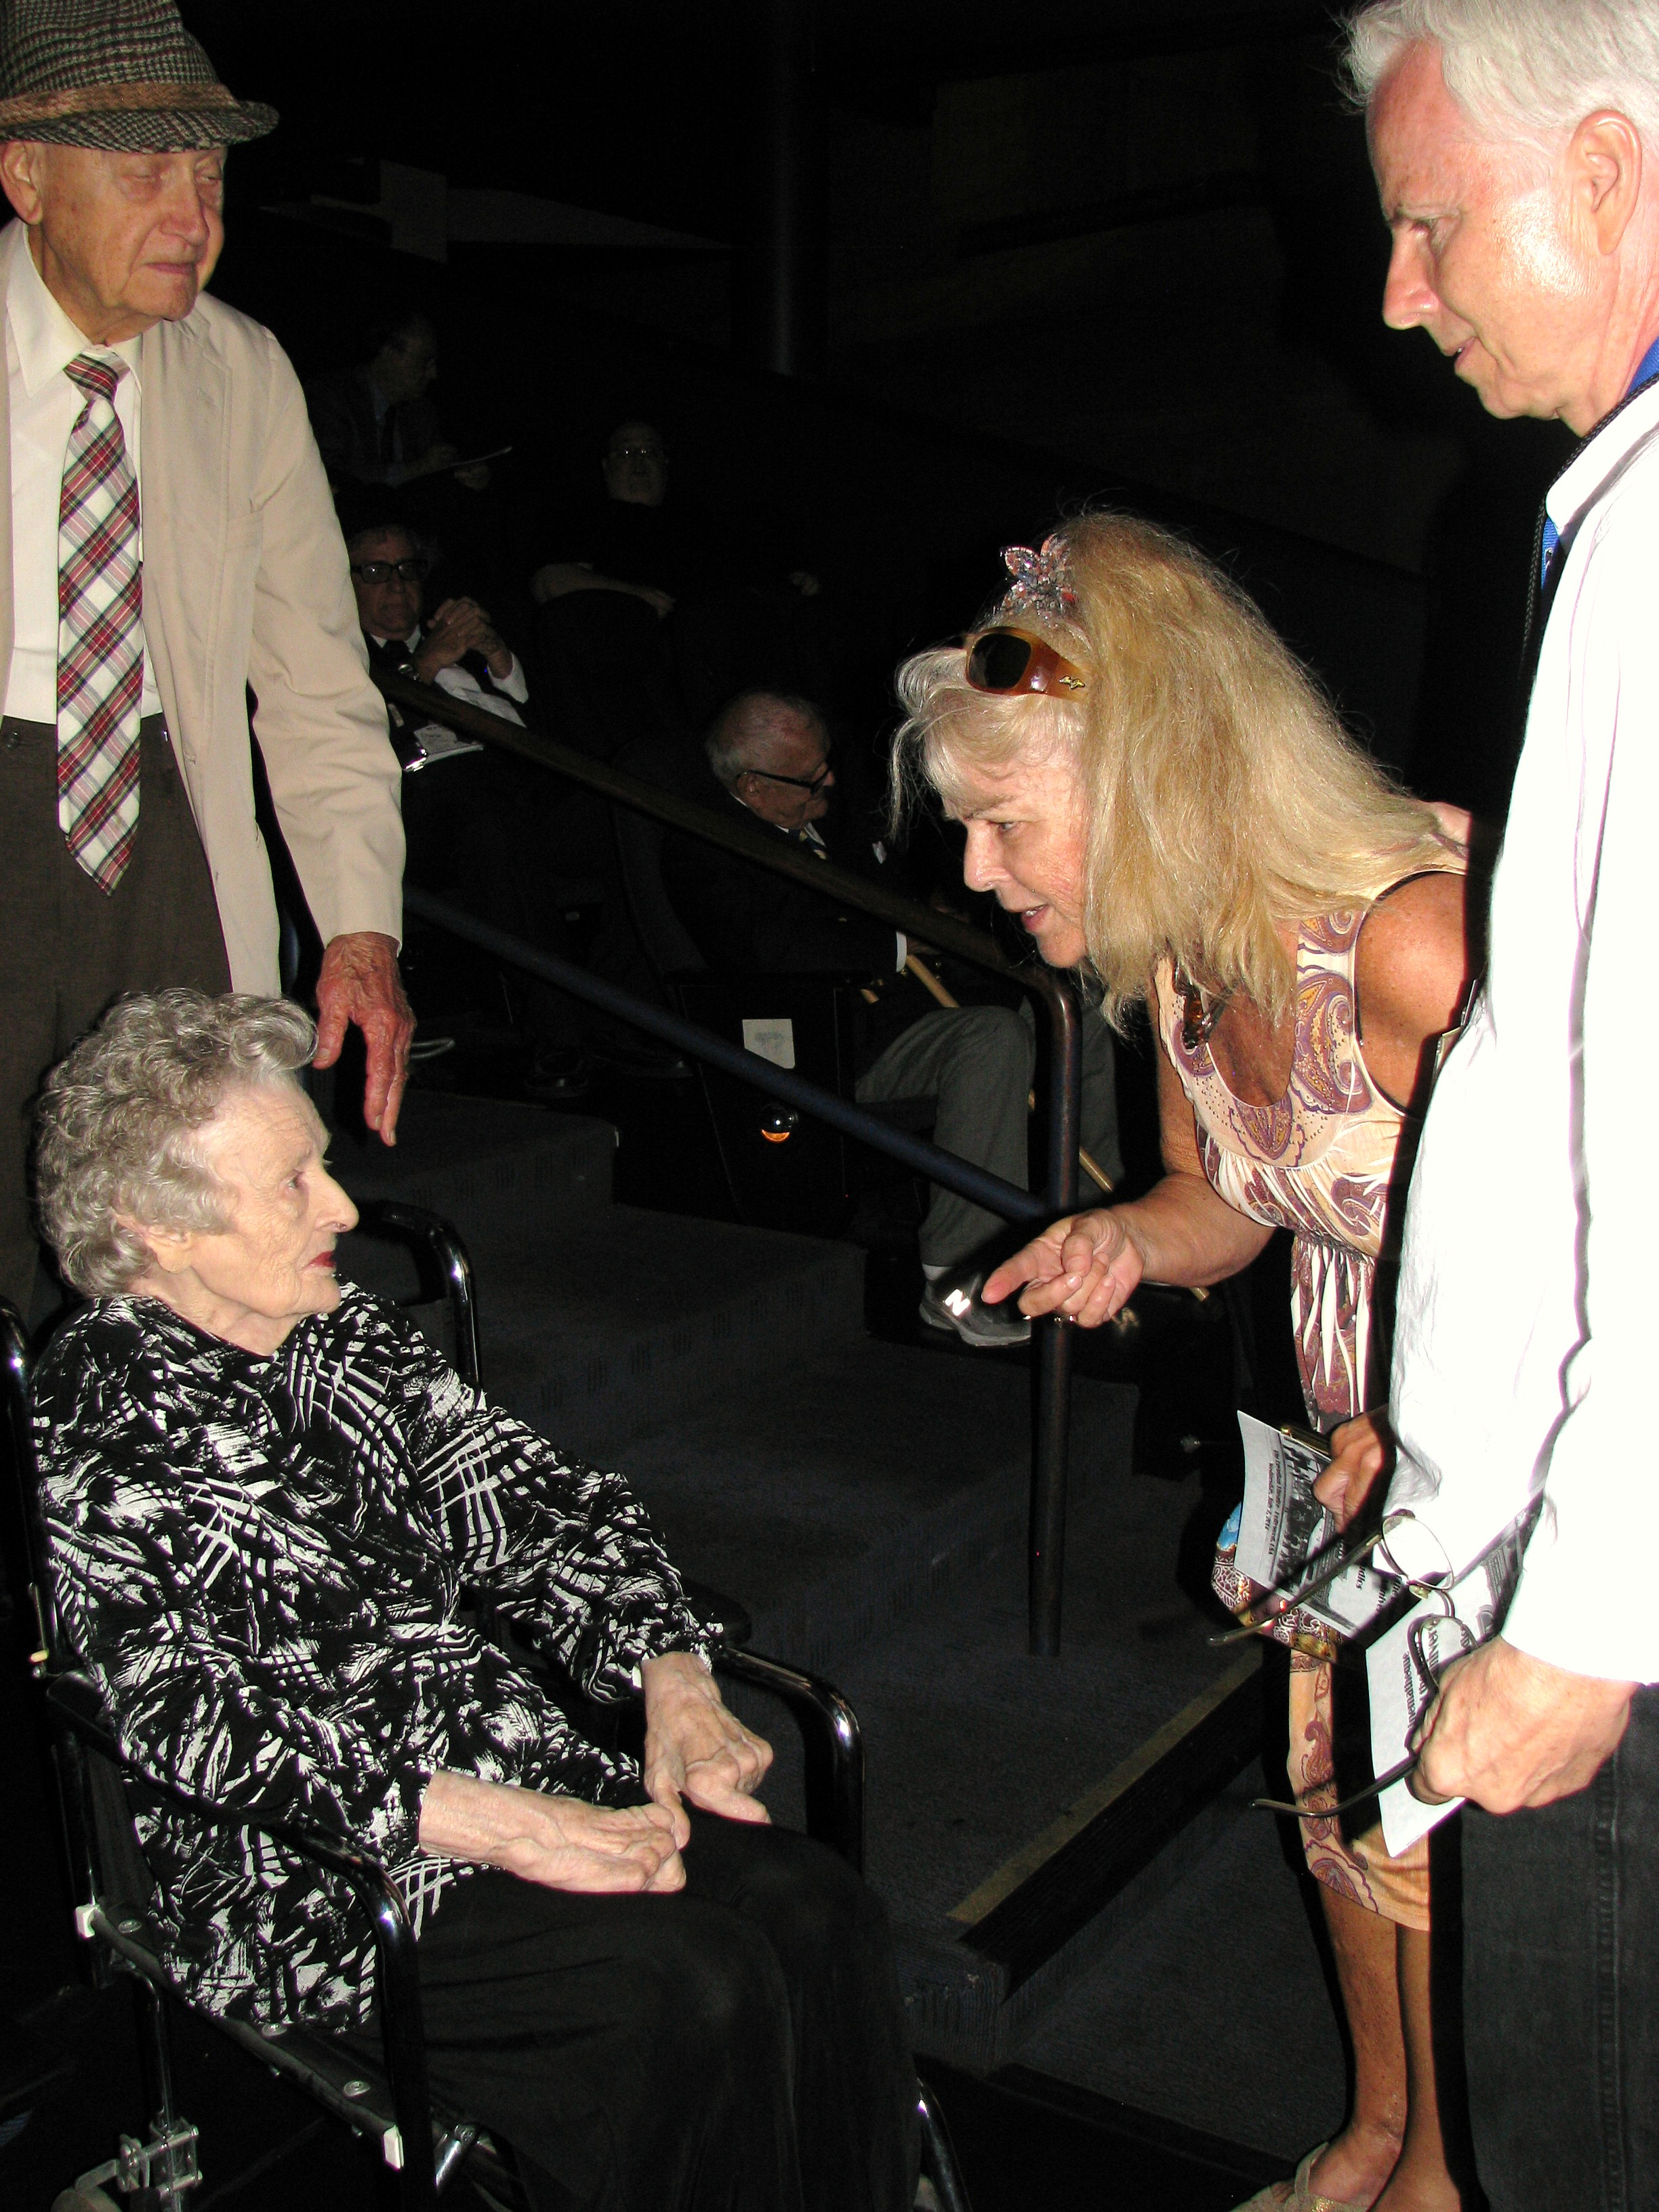 Hal Roach's daughter Jeannie greets Lois Laurel.